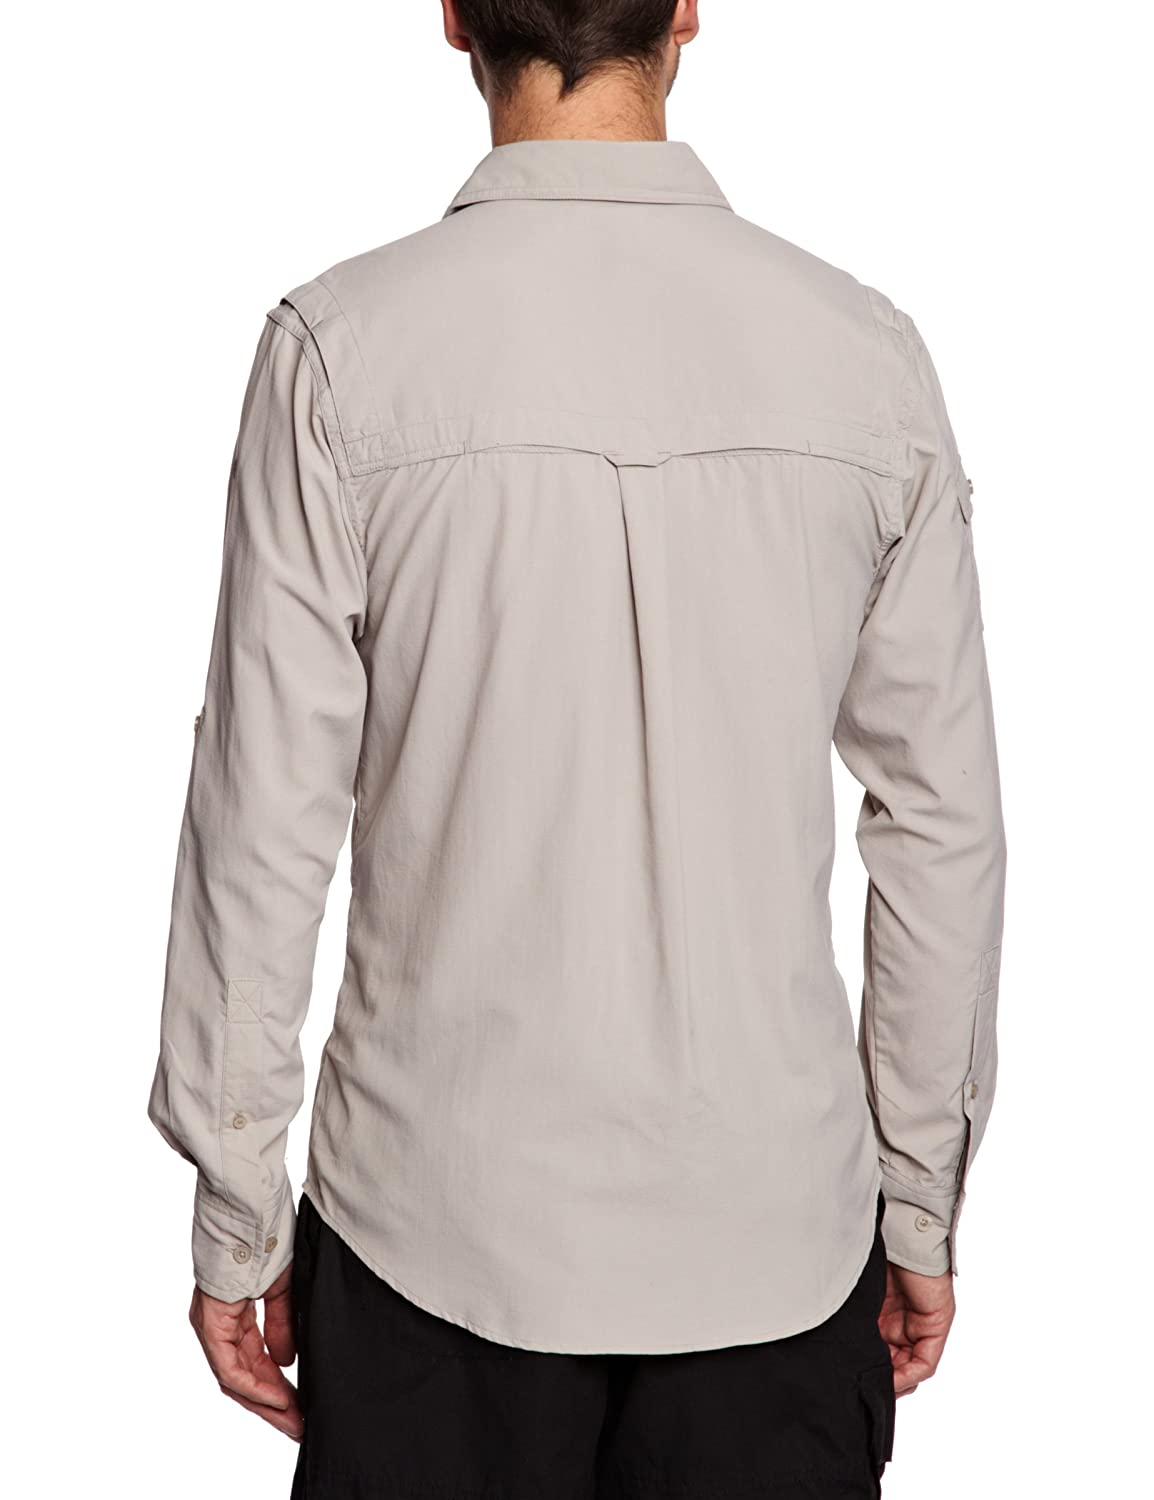 Mens craghoppers kiwi long sleeve travel safari hiking shirt size xl - Craghoppers Nosilife Mens Long Sleeved Insect Repellent Shirt Amazon Co Uk Sports Outdoors